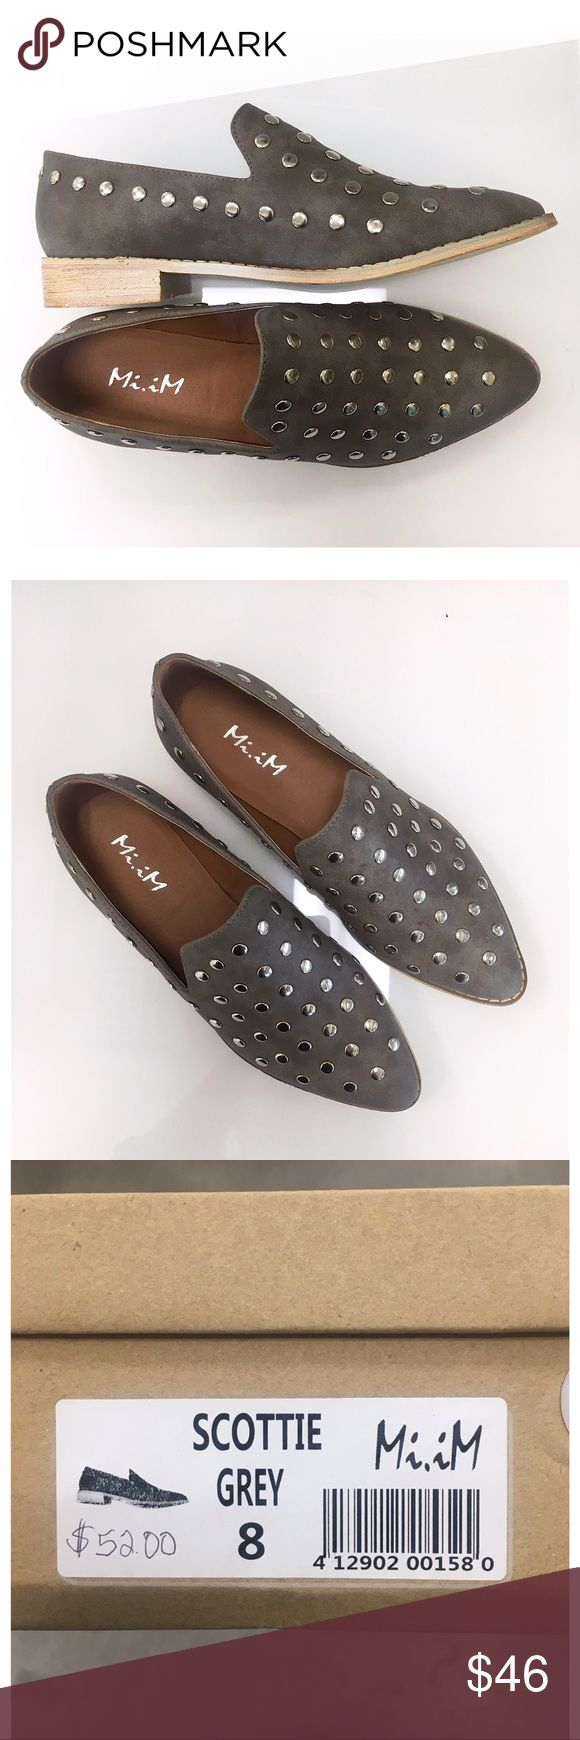 Scottie Studded Loafer in Grey Add an edge to any outfit with these studded loafers in a taupe grey. Runs slightly big. New in box. Mi.iM Shoes Flats & Loafers